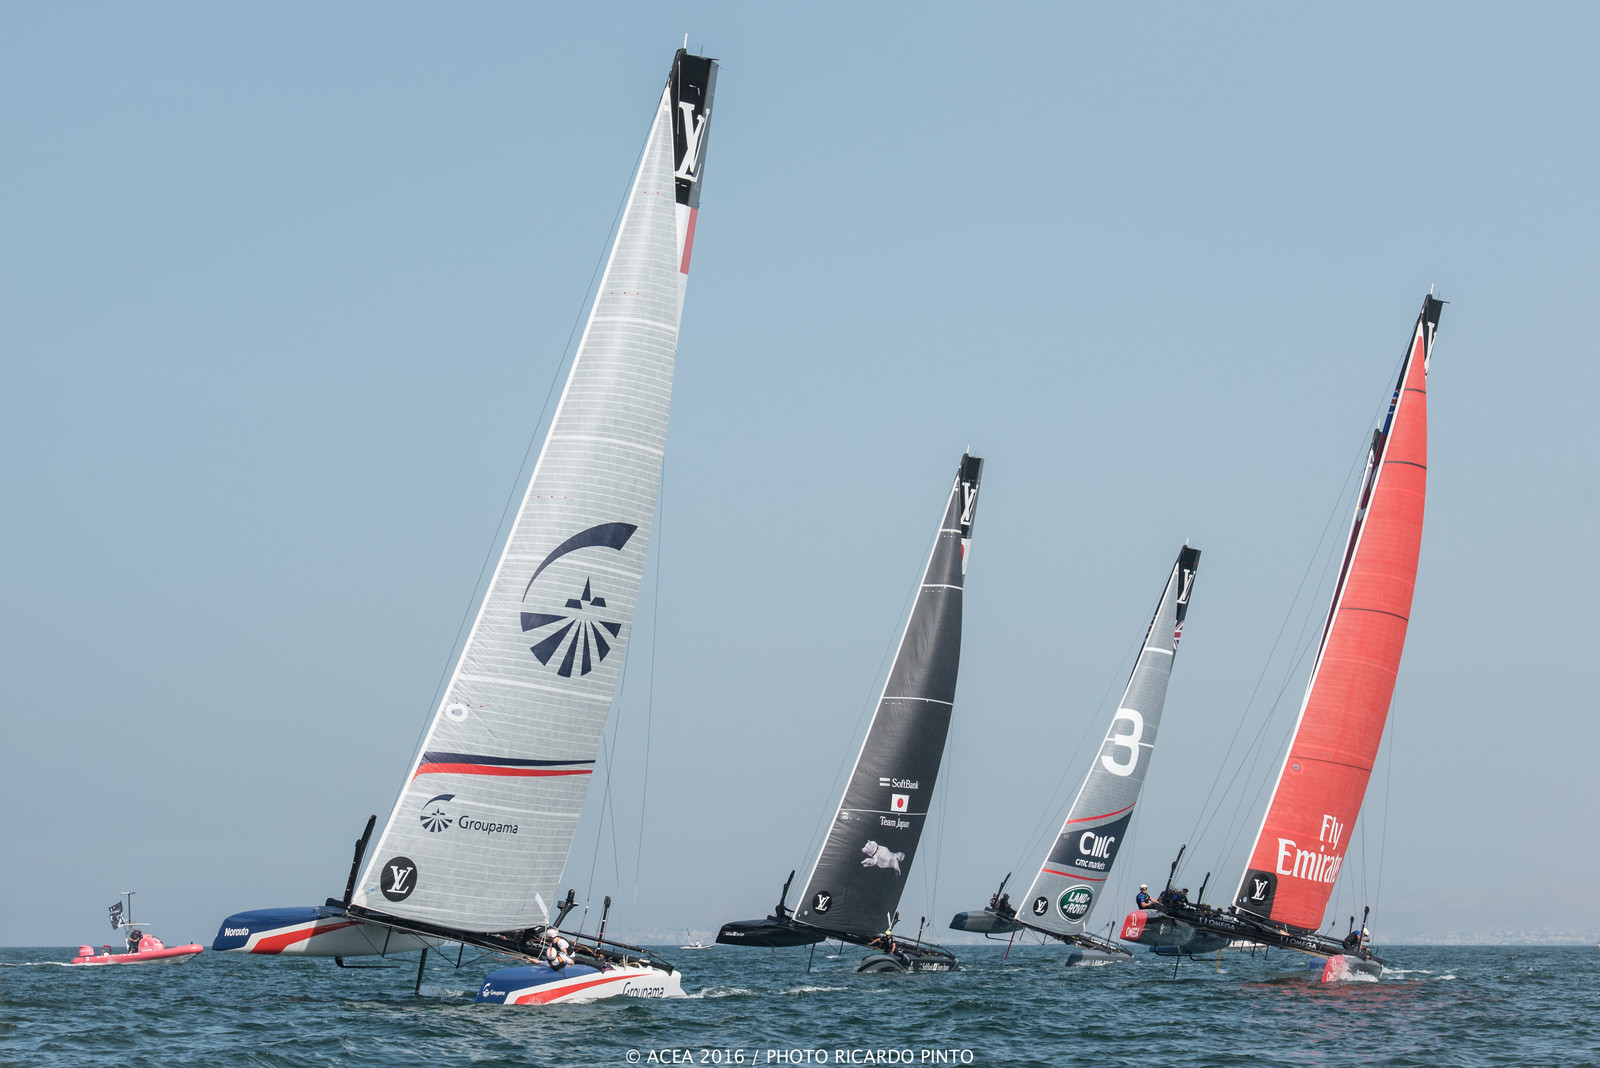 America's Cup to make early appearance at NYC Sailor's Ball this Friday